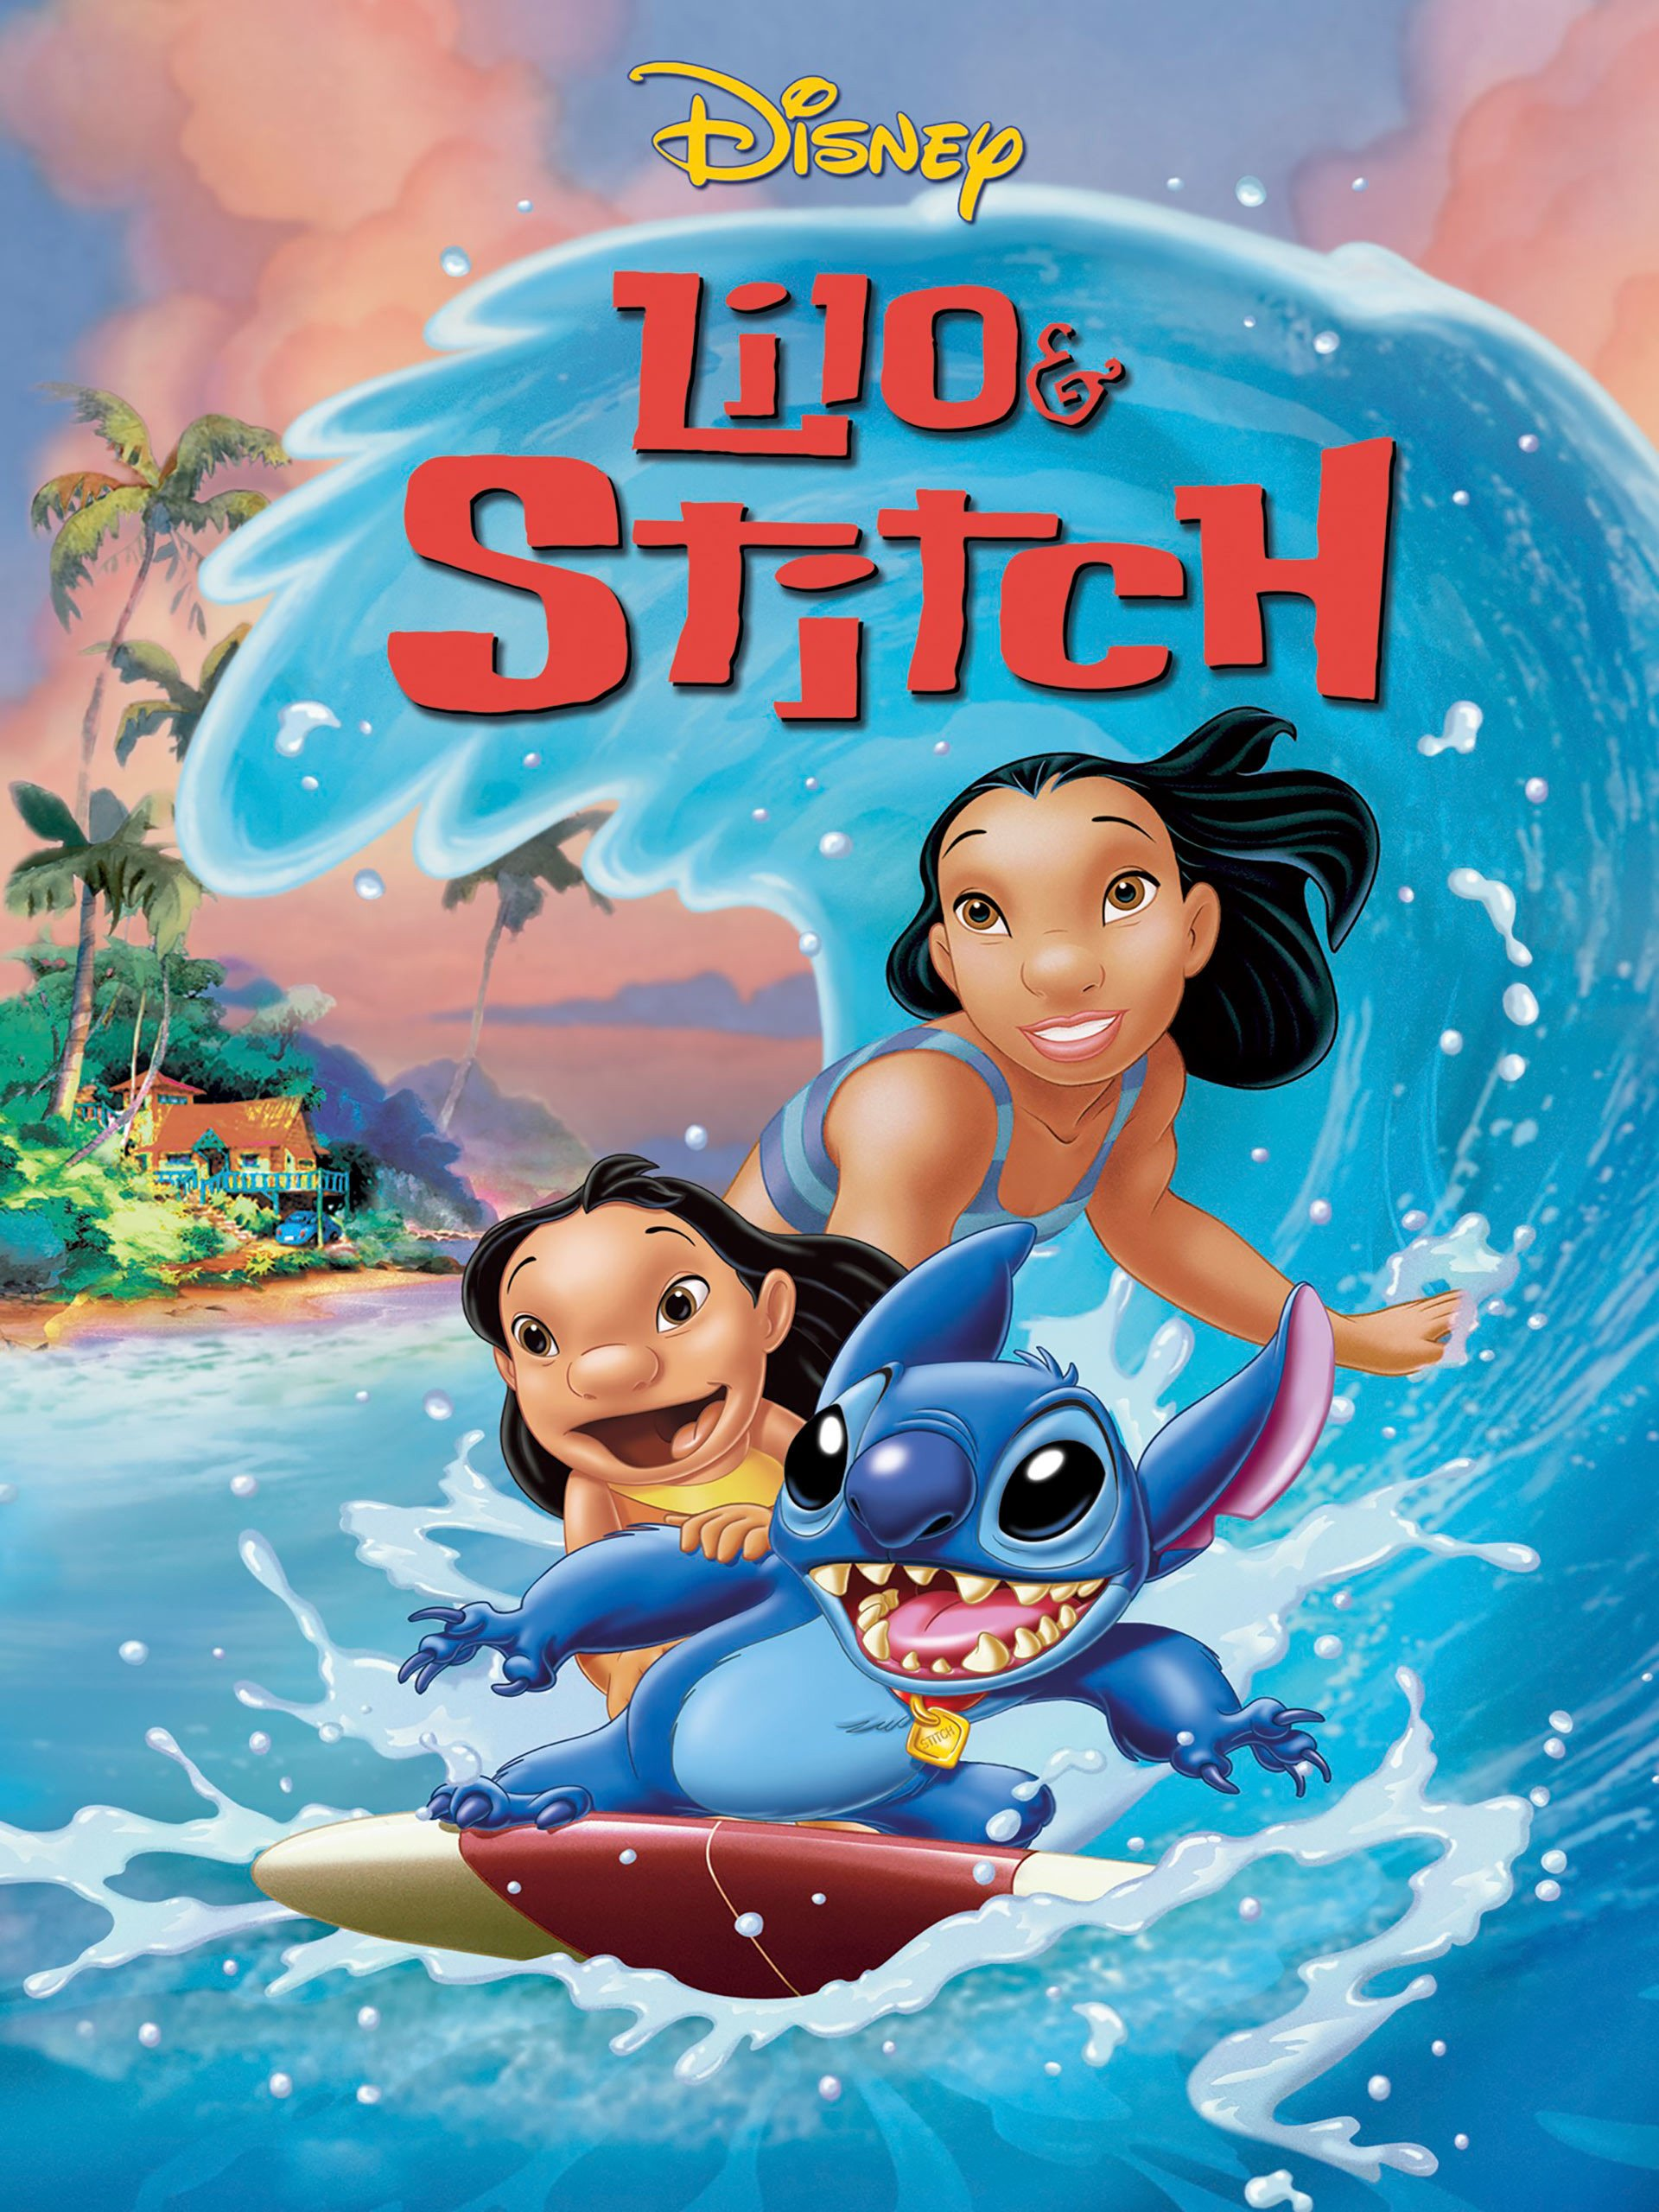 Lilo & Stitch by